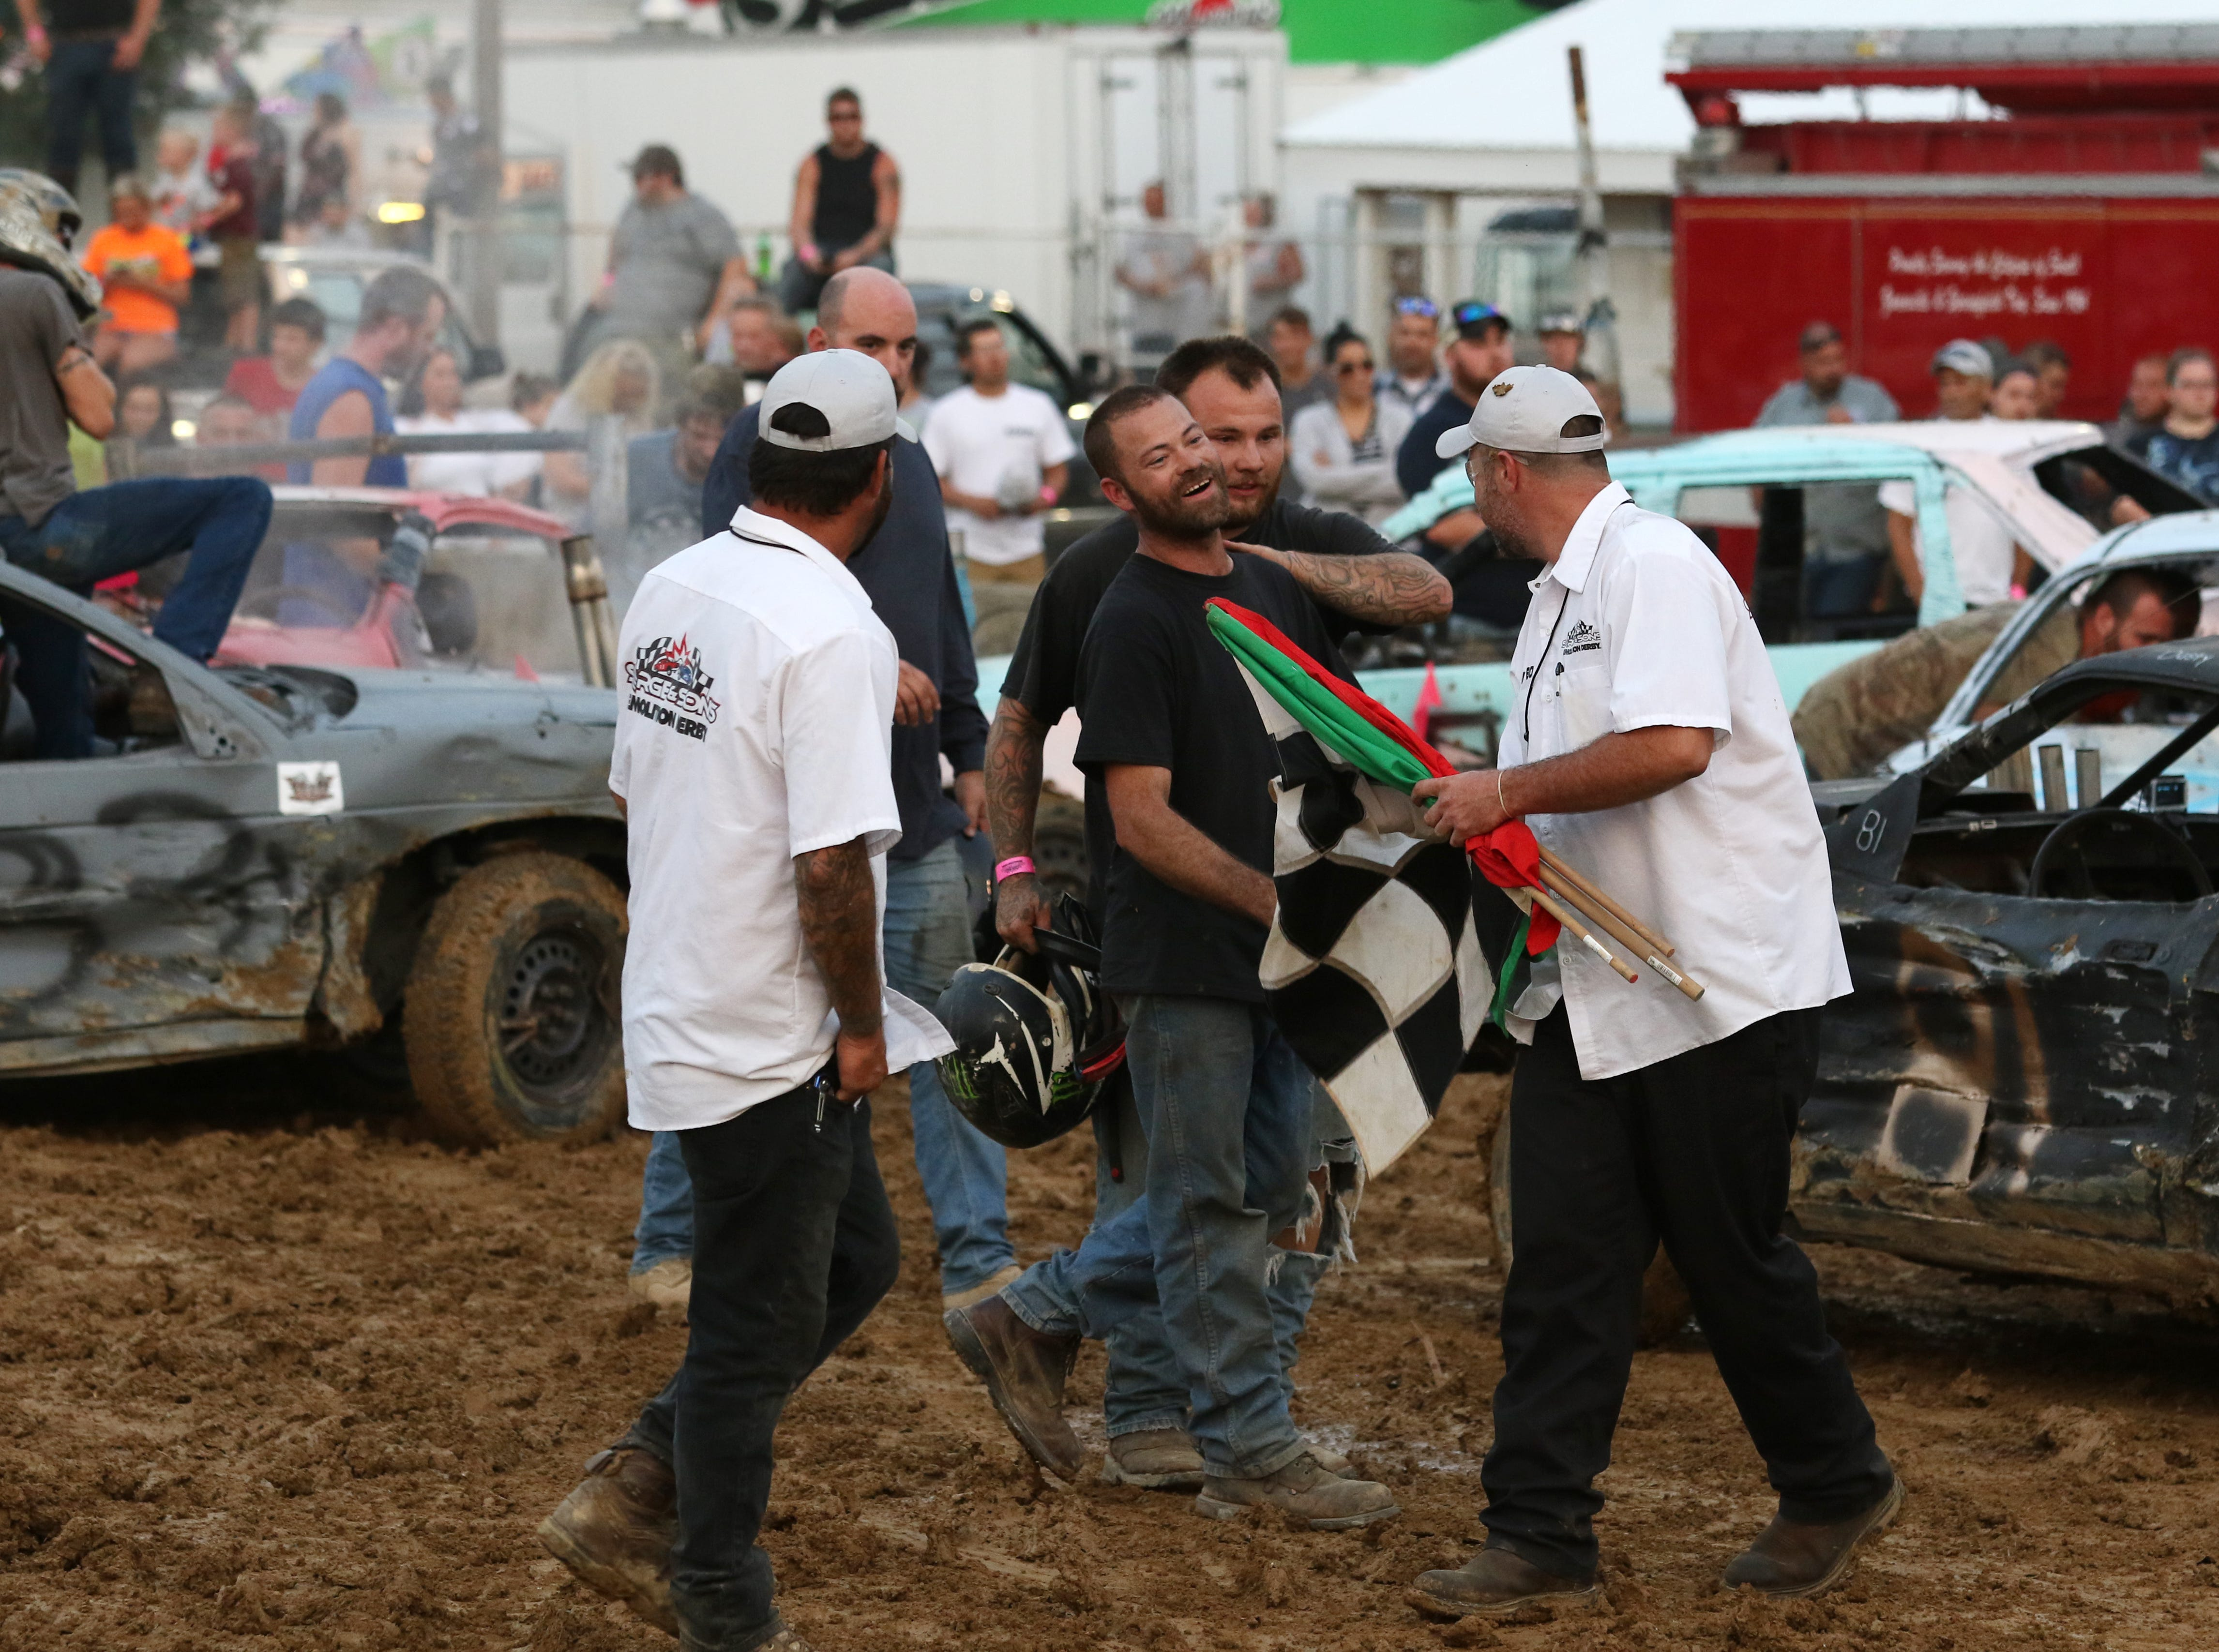 Long-time Demolition Derby driver Dusty Dady ends his Muskingum County Demolition Derby career with a win on Tuesday.